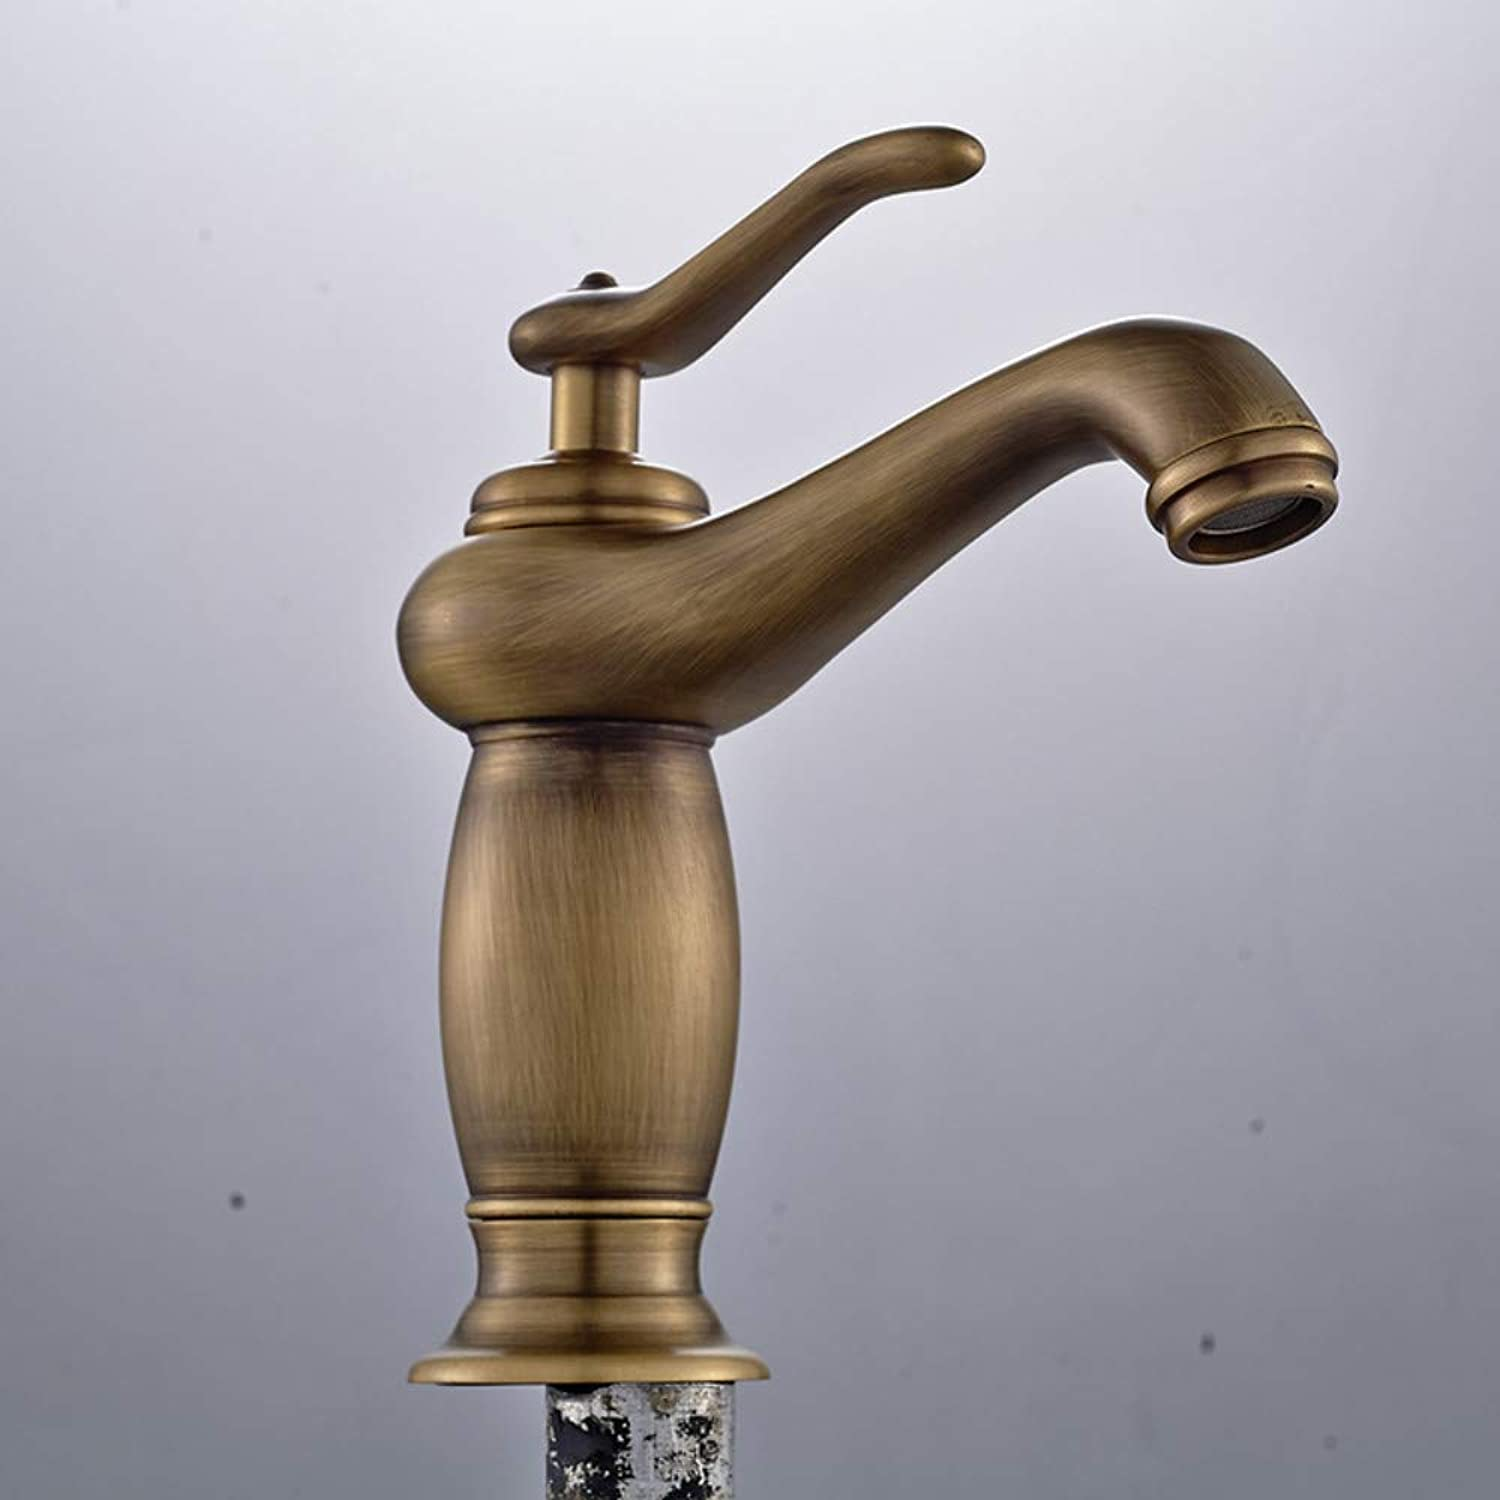 Floungey Kitchen Sink Tapbathroom Sink Tap antique gold-Plated Swan Faucet Copper Hot And Cold Basin Faucet gold Countertop Basin Faucet European Style